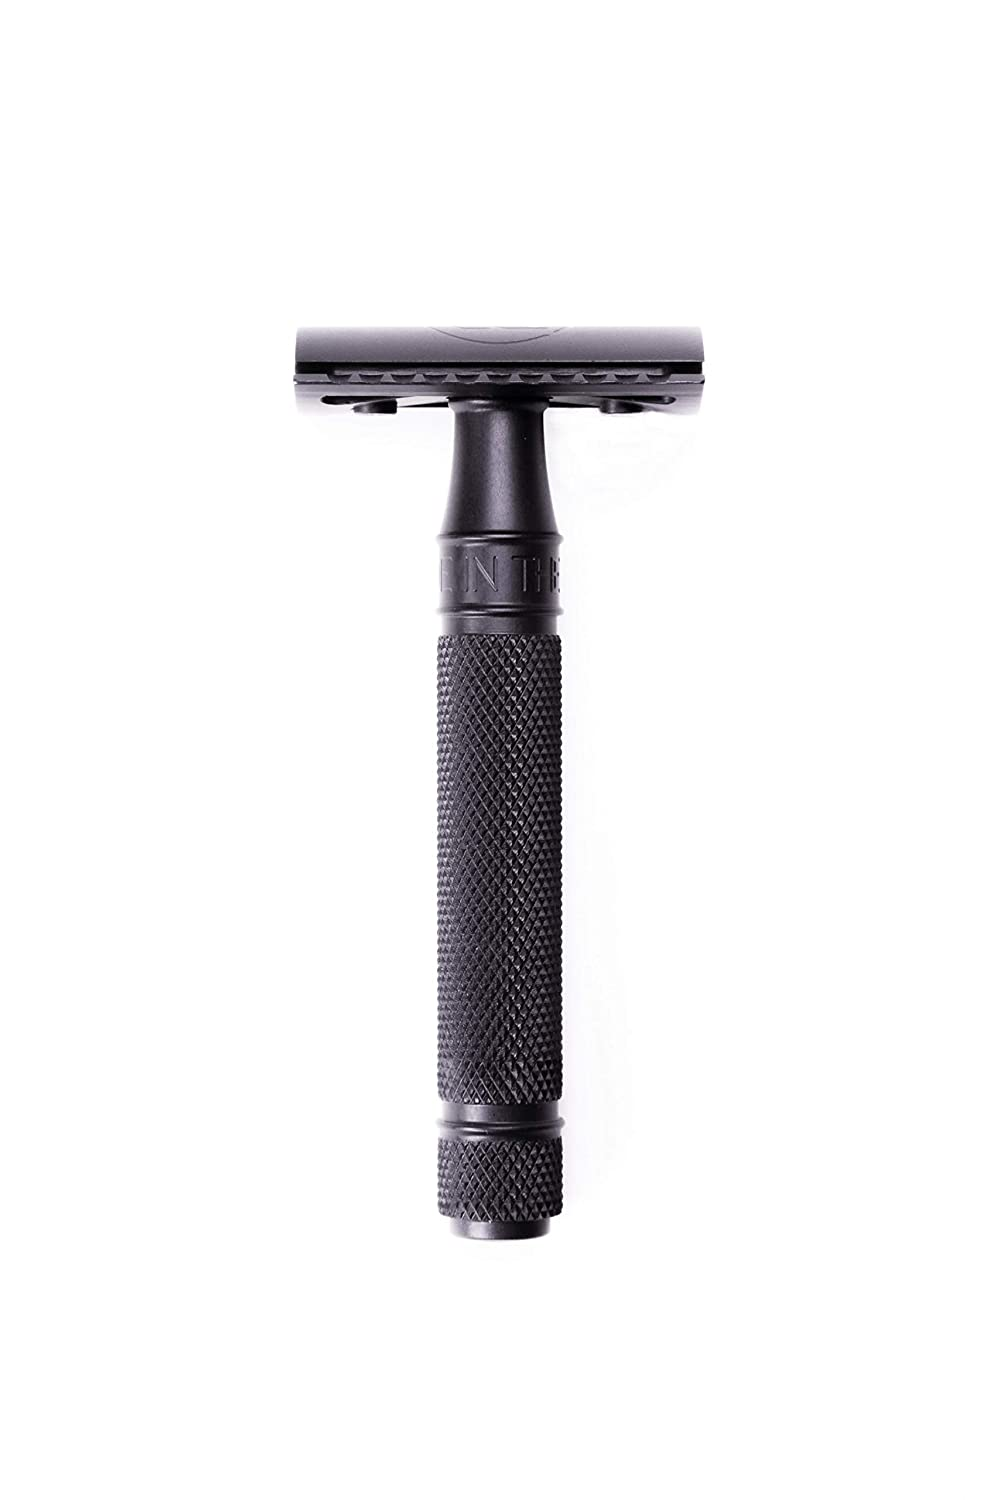 Battle Brothers MkII 日本製 Double Edge Safety USA Made Razor in the 10%OFF